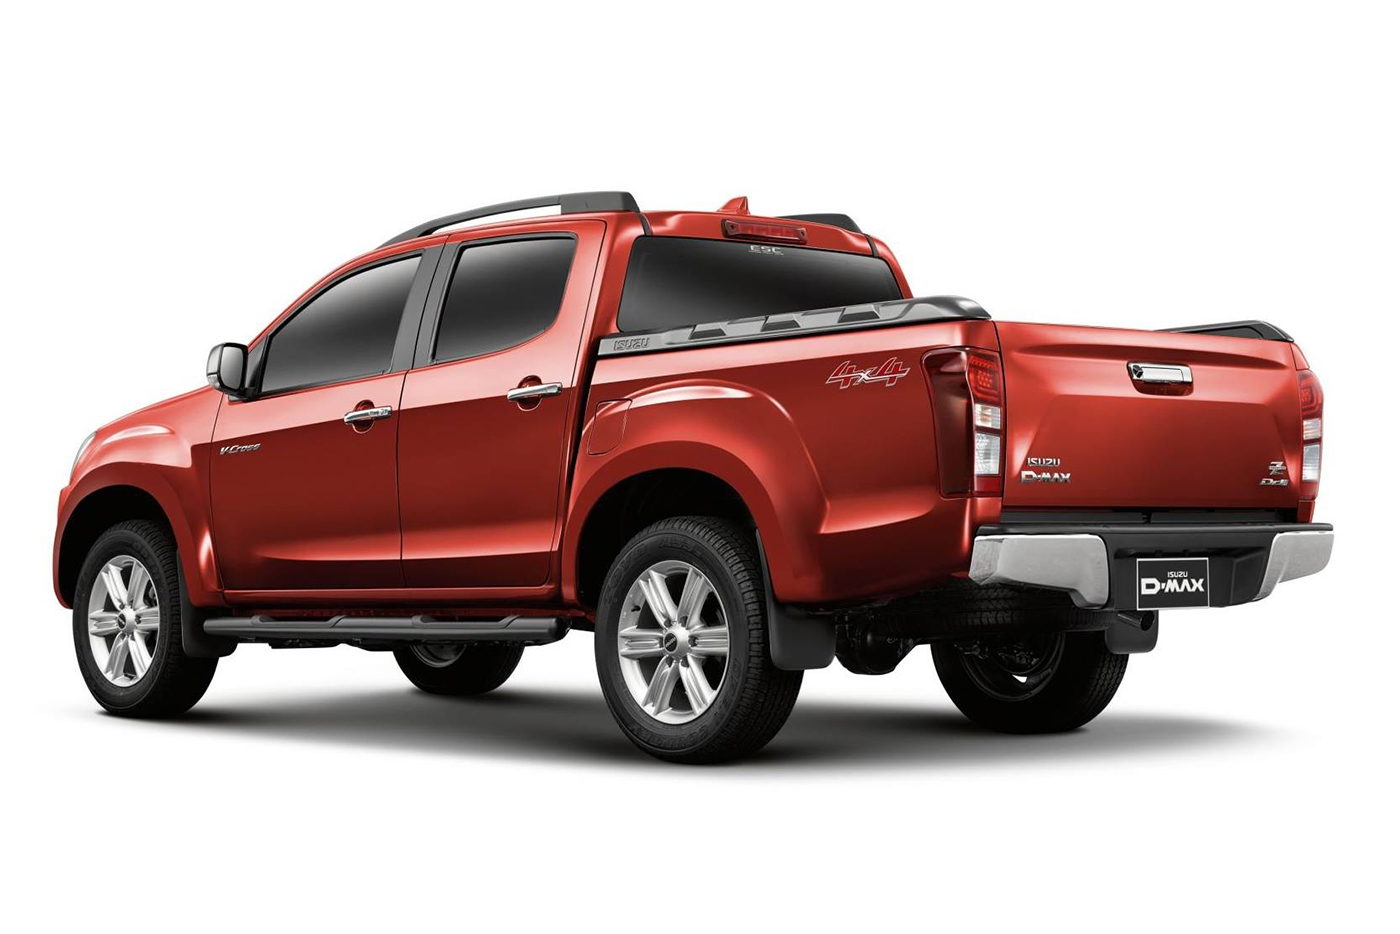 isuzu-d-max-v-cross-limited-edition-rear-three-quarters.jpg